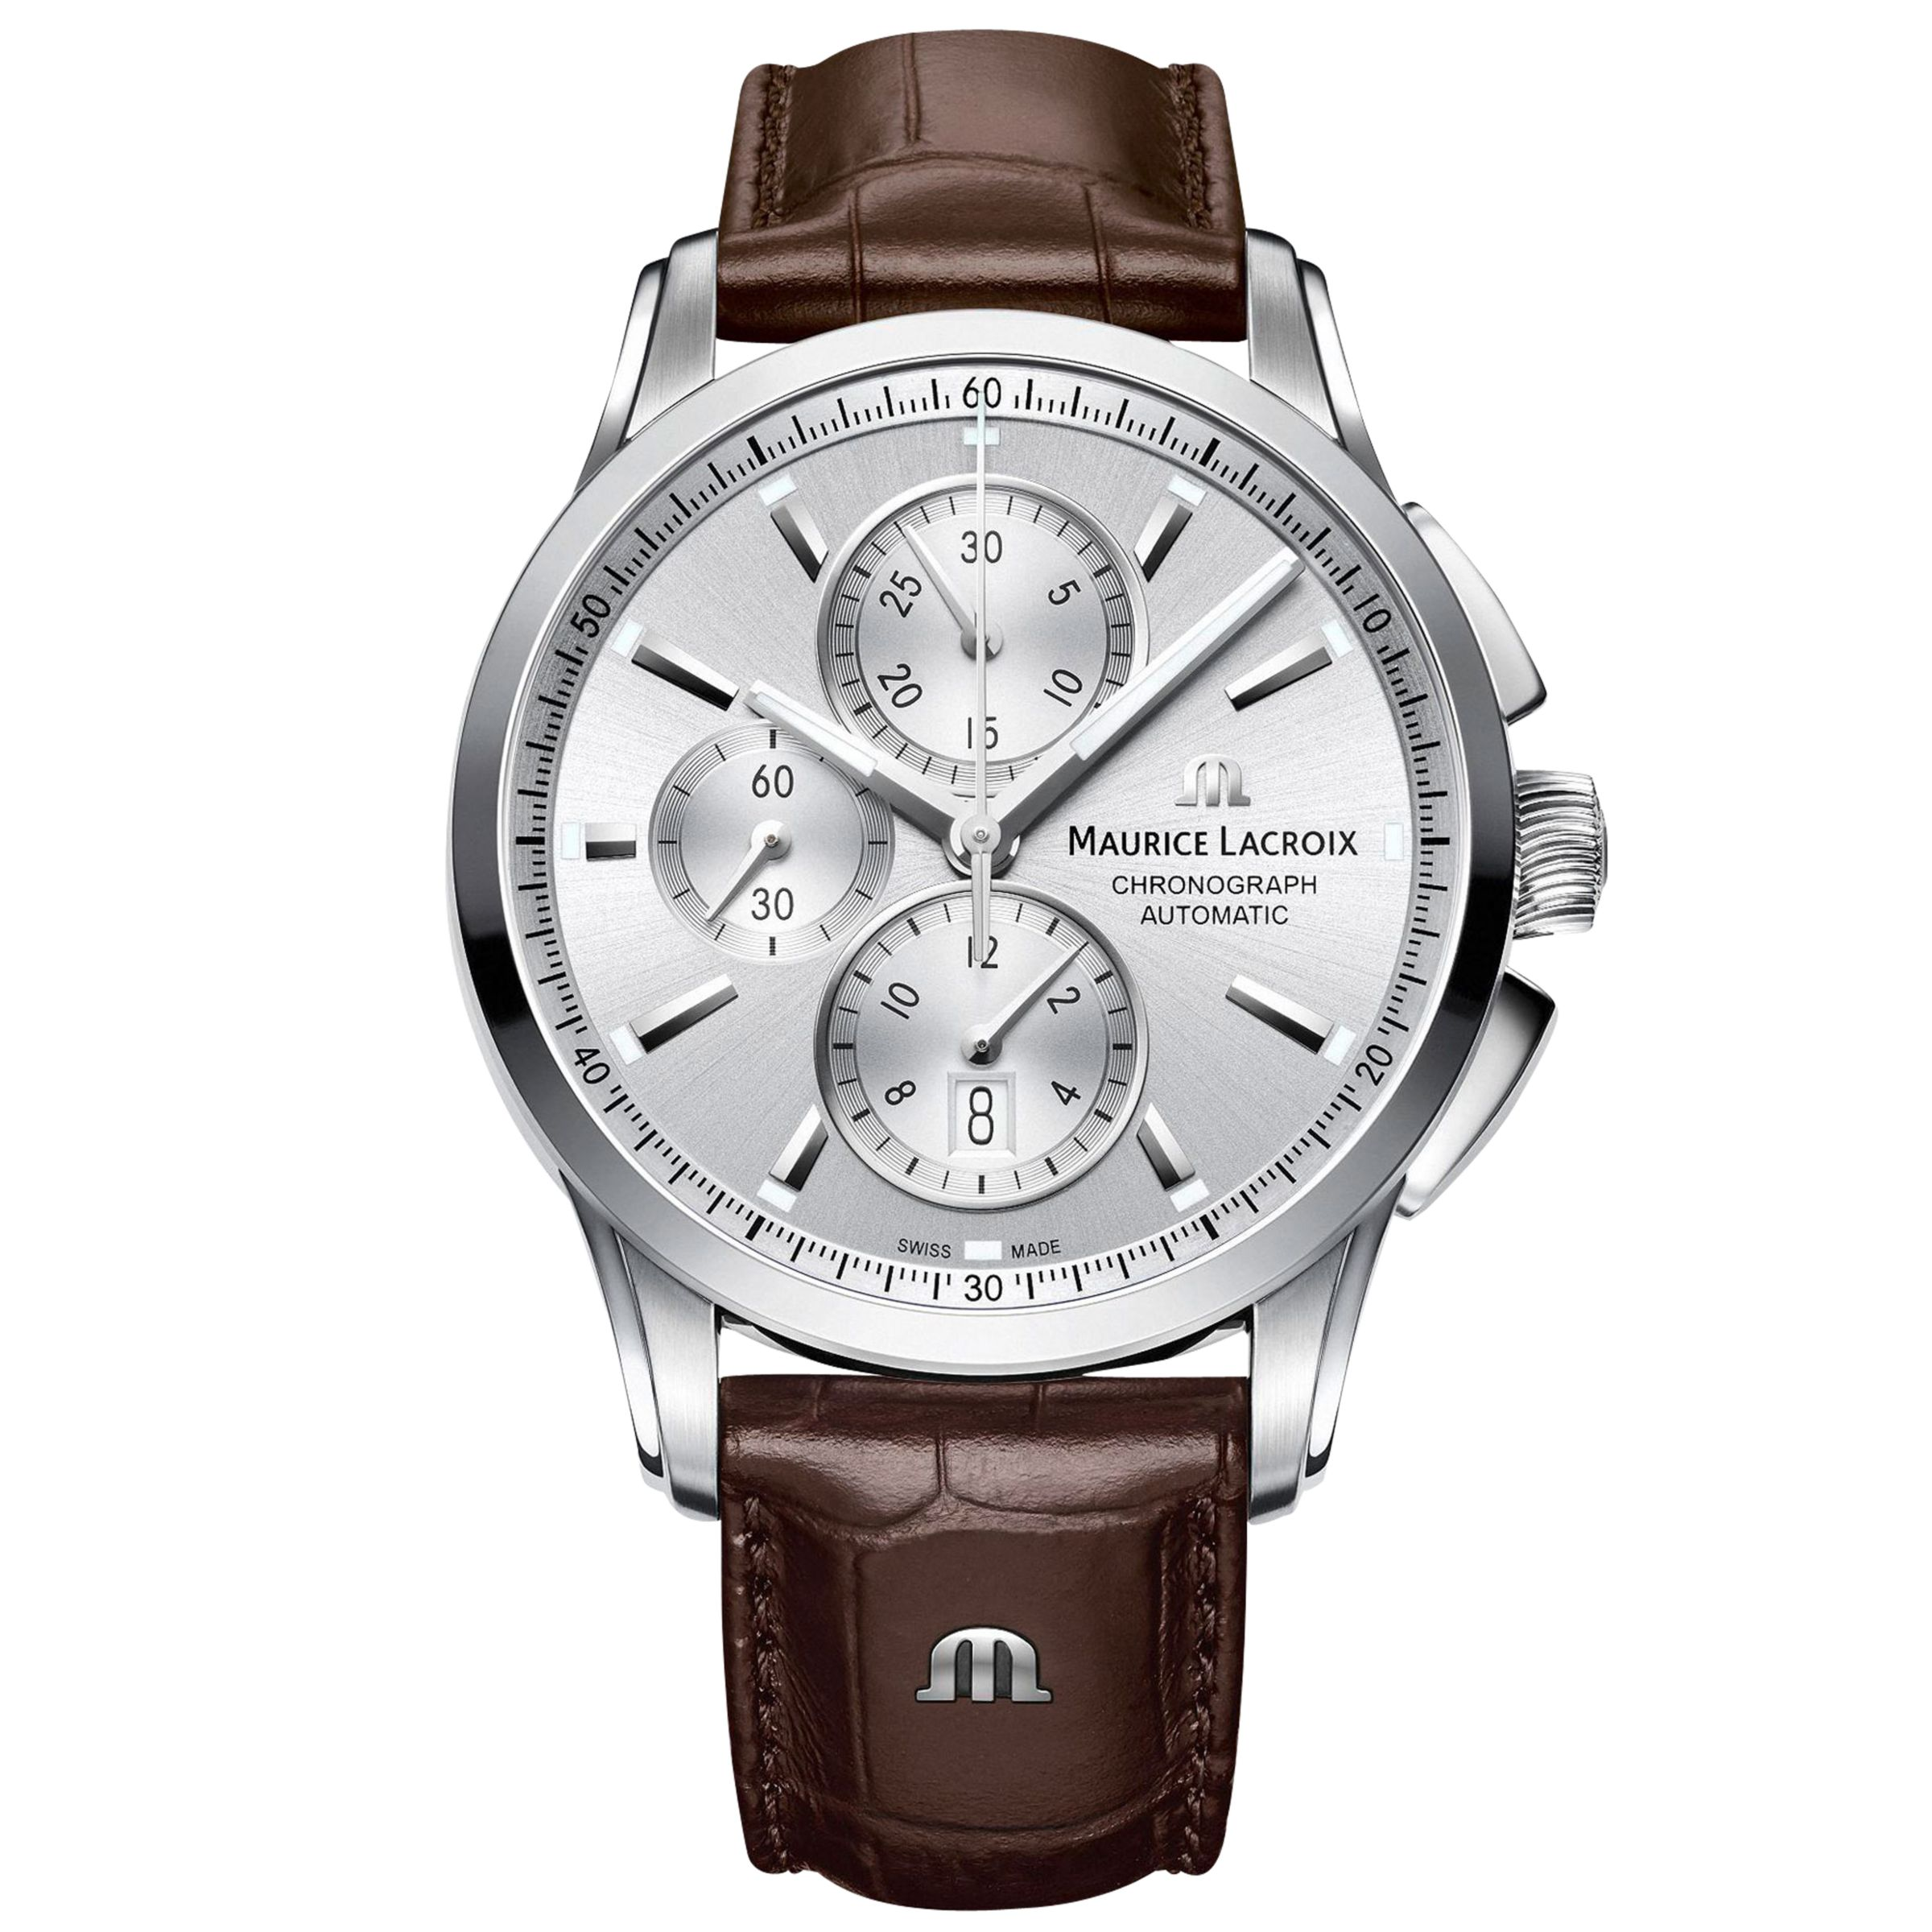 Maurice Lacroix Maurice Lacroix PT6388-SS001-130-1 Men's Pontos Chronograph Date Automatic Leather Strap Watch, Brown/Silver